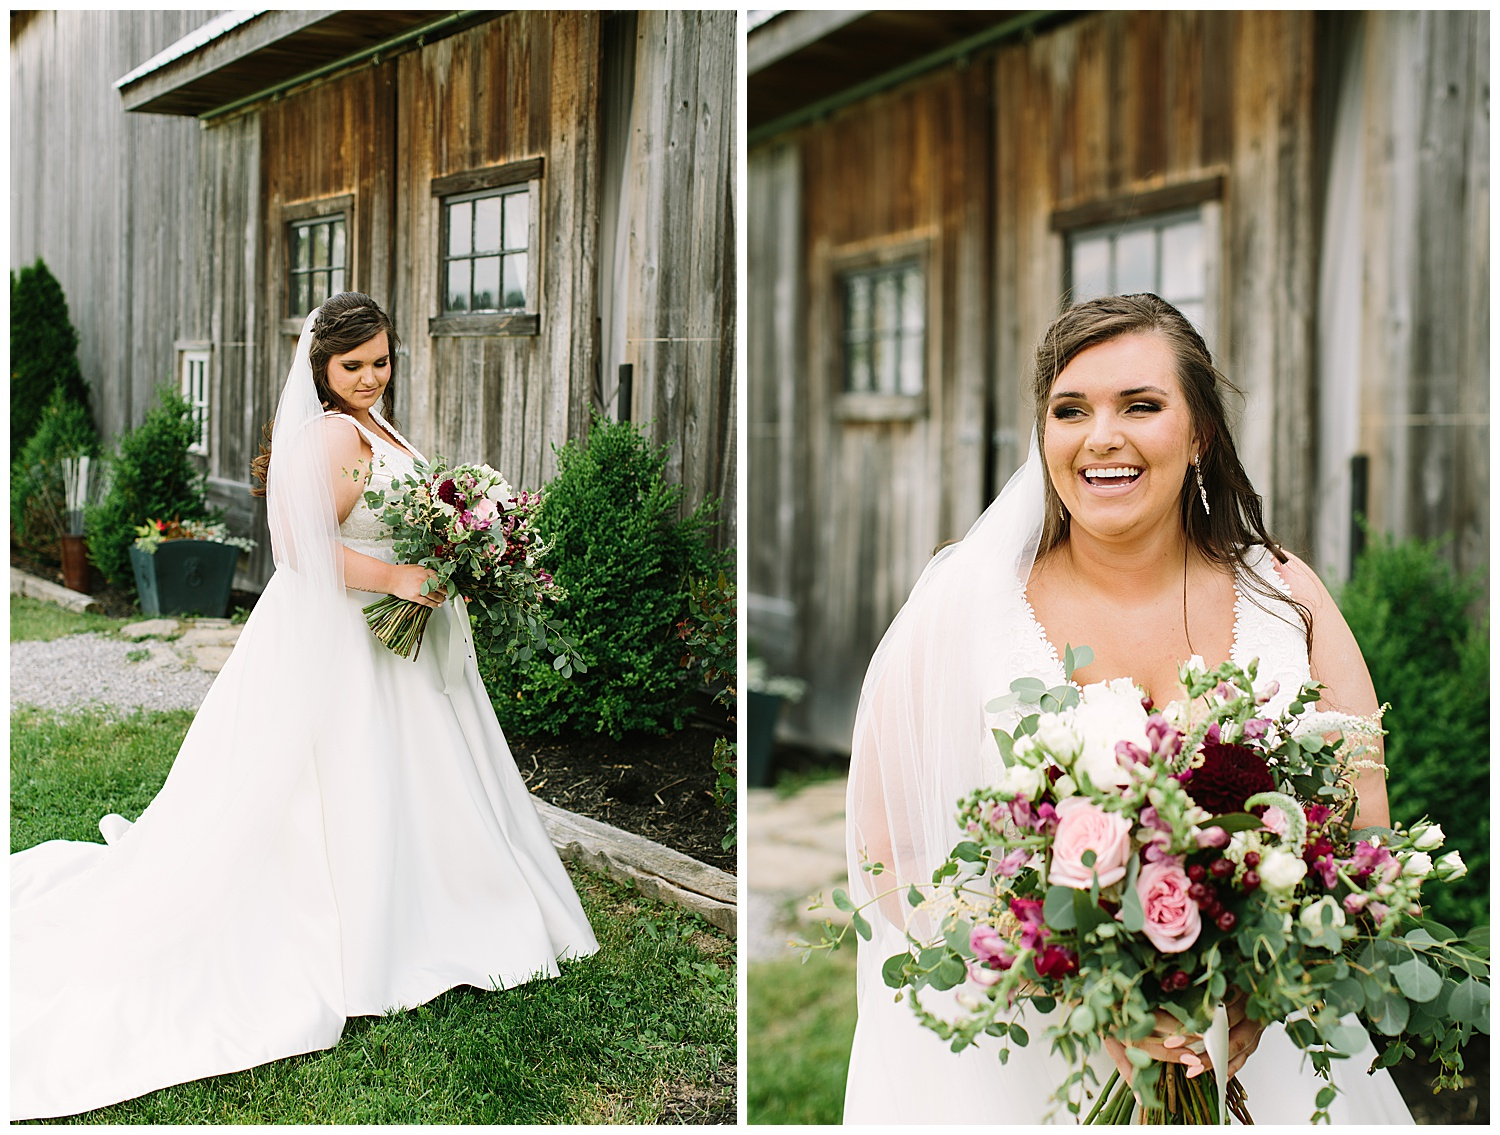 trent.and.kendra.photography.eden.springs.farmstead.shelbyville.wedding-37.jpg